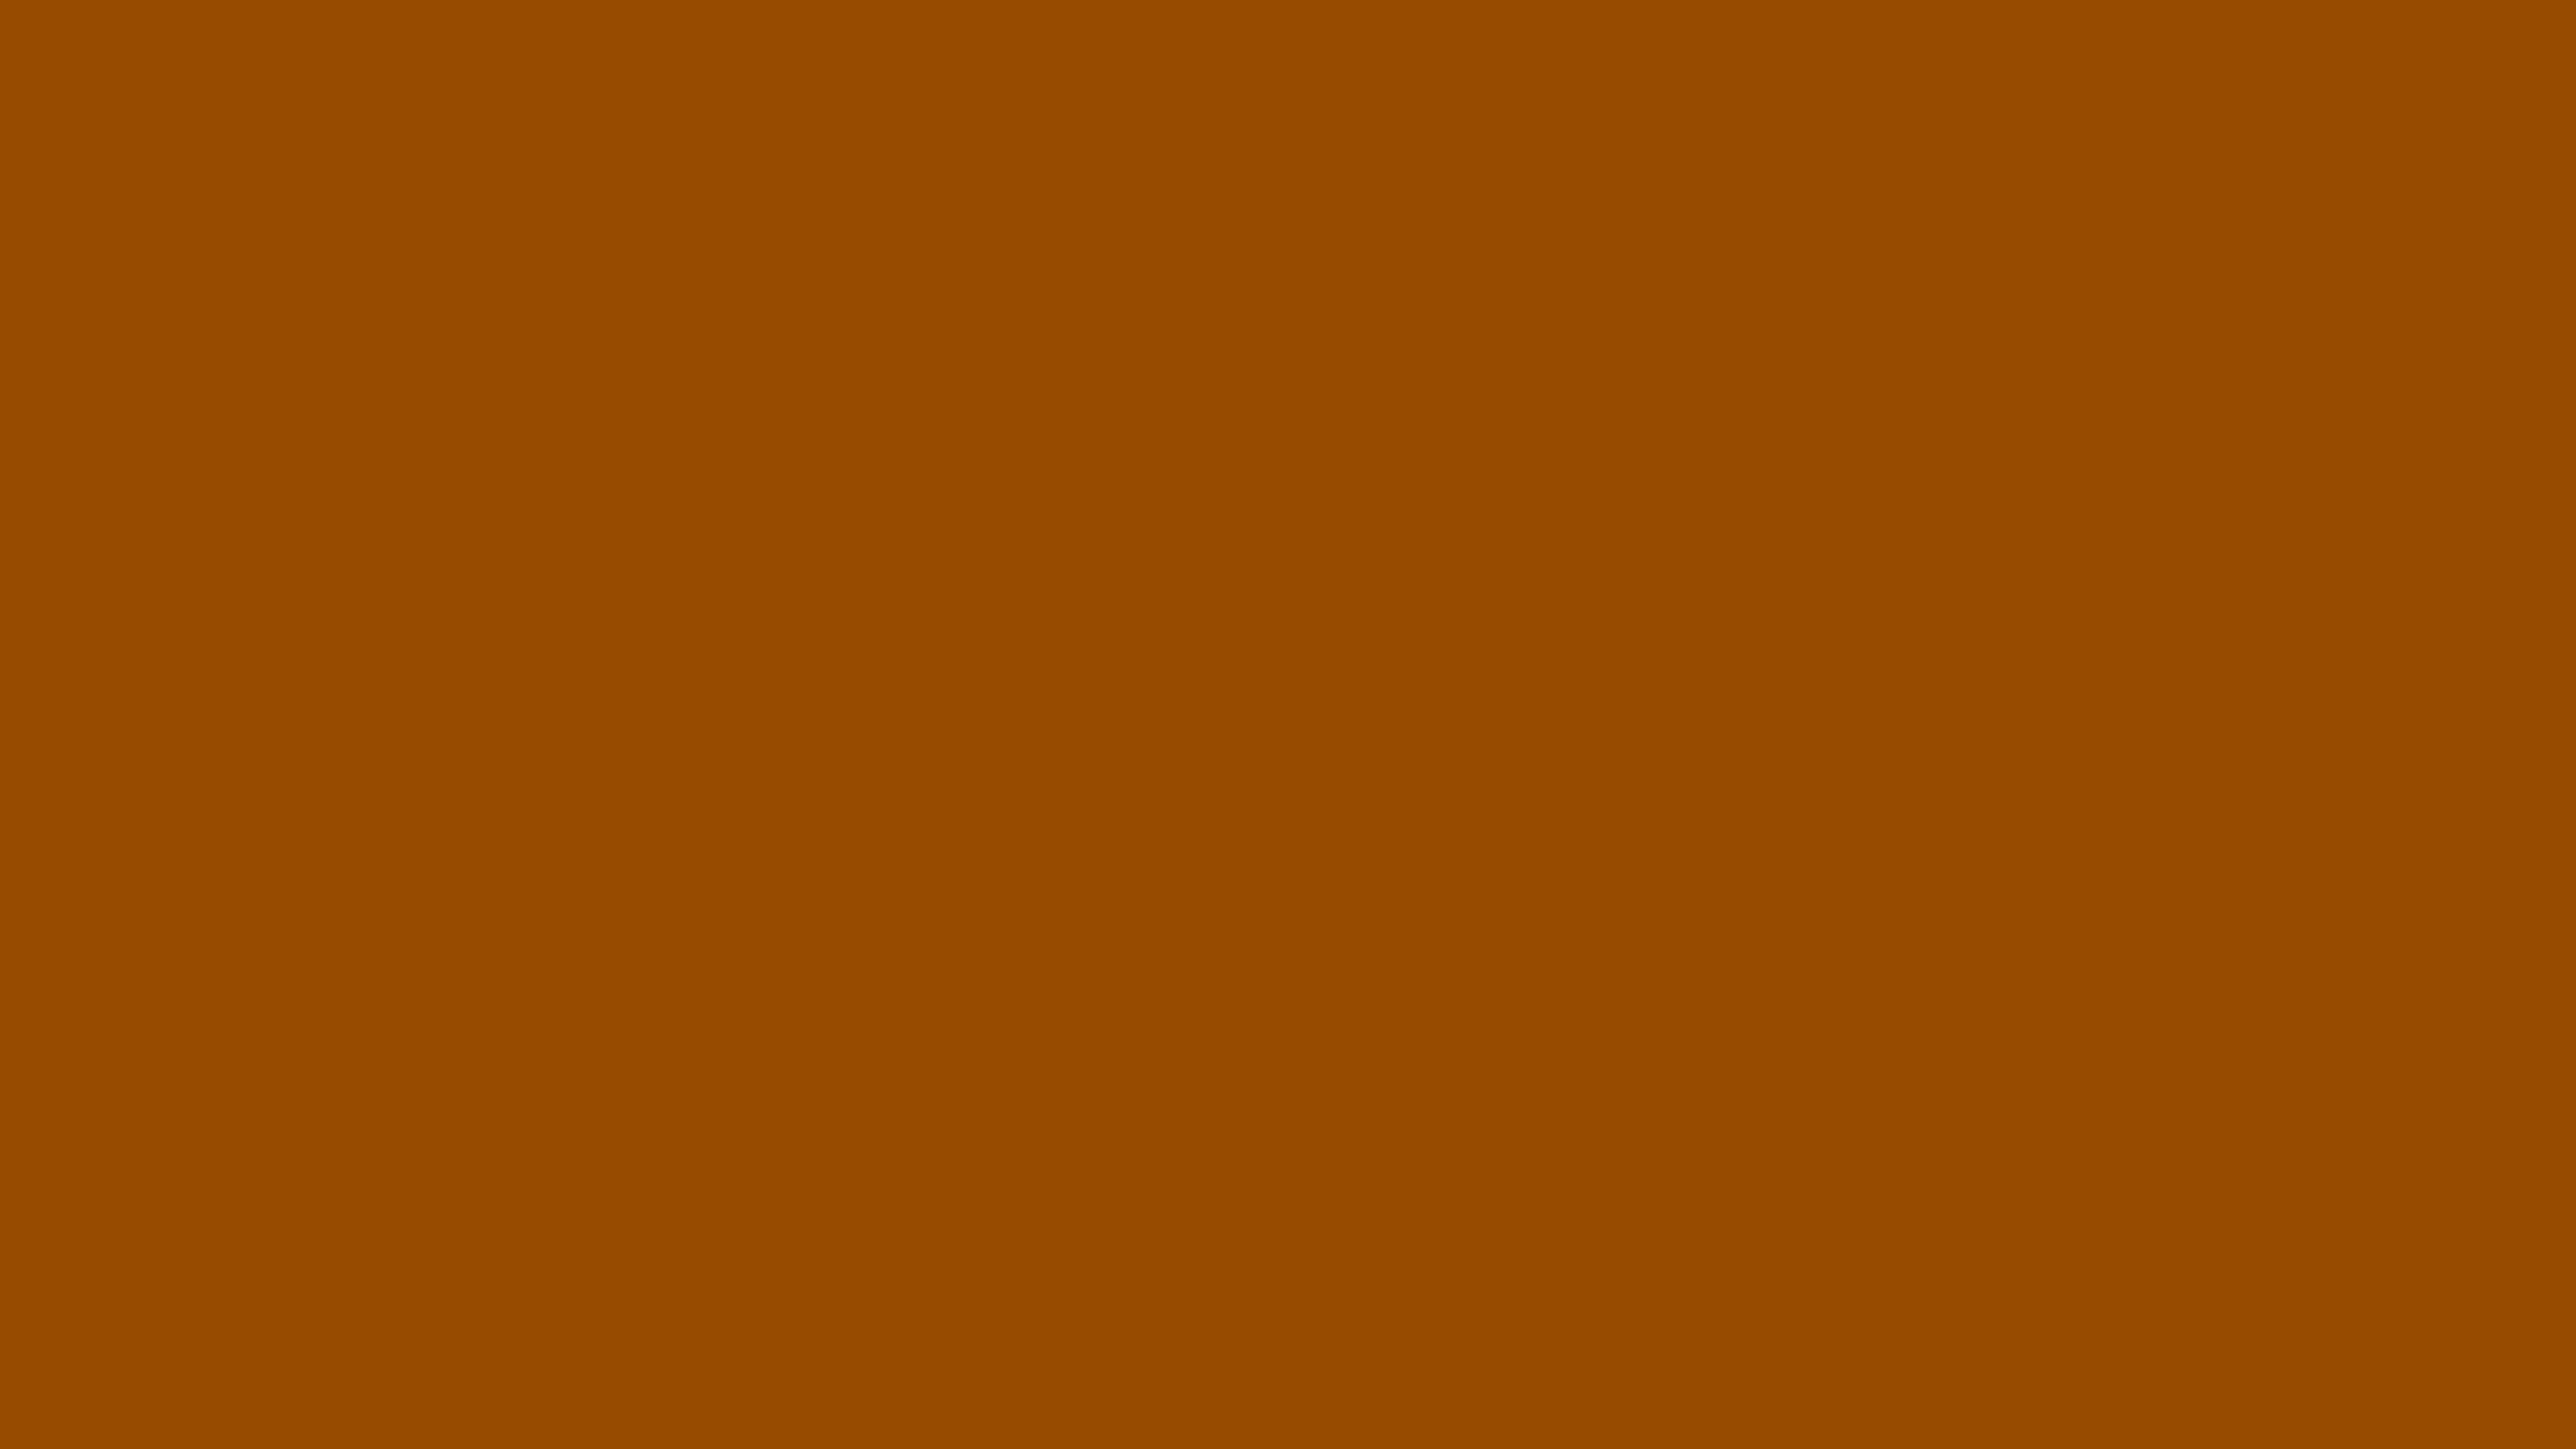 4096x2304 Brown Traditional Solid Color Background